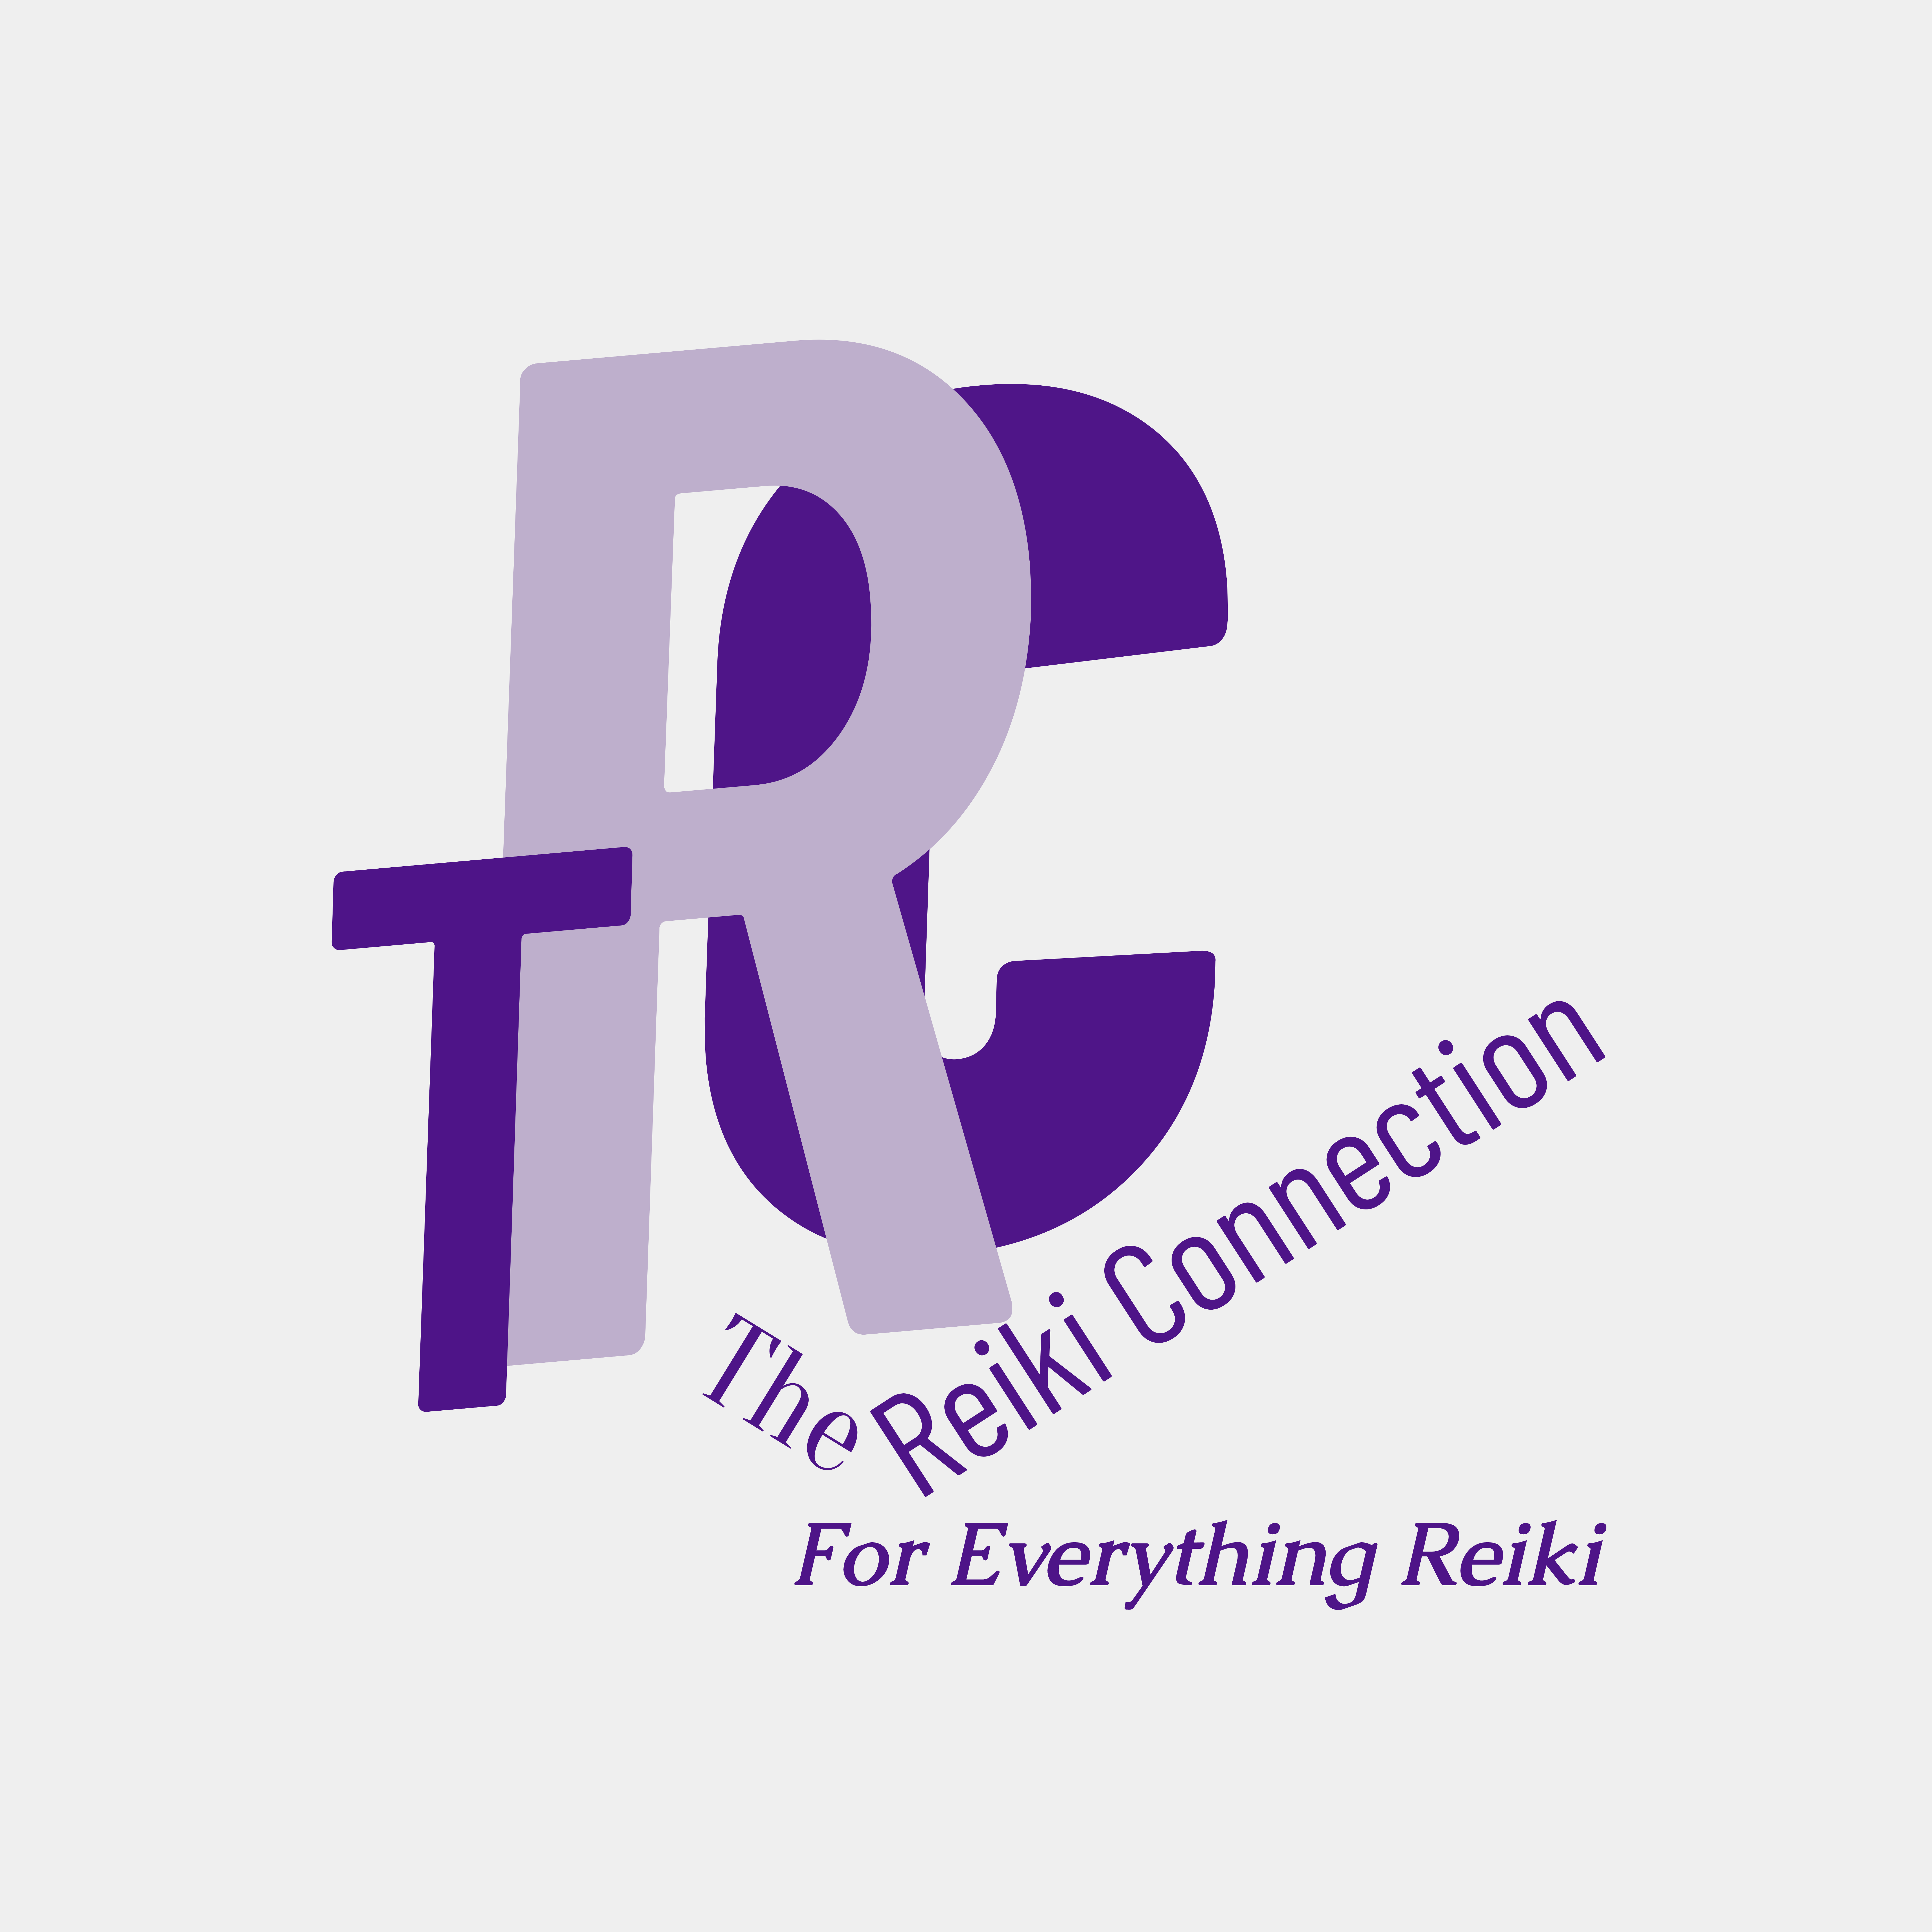 The Reiki Connection for Everything Reiki